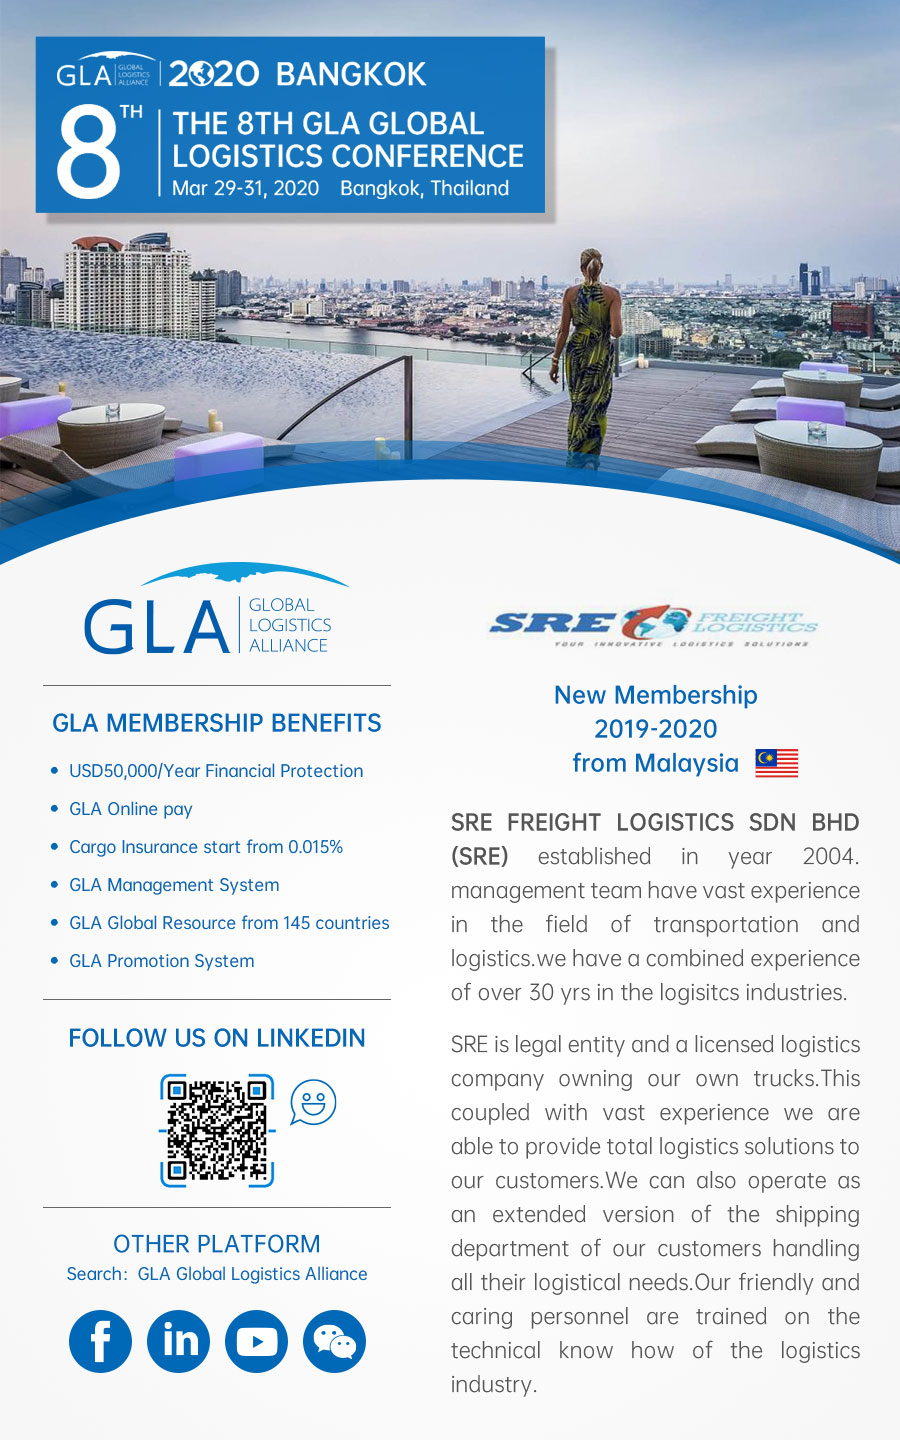 GLA New Membership — SRE FREIGHT LOGISTICS